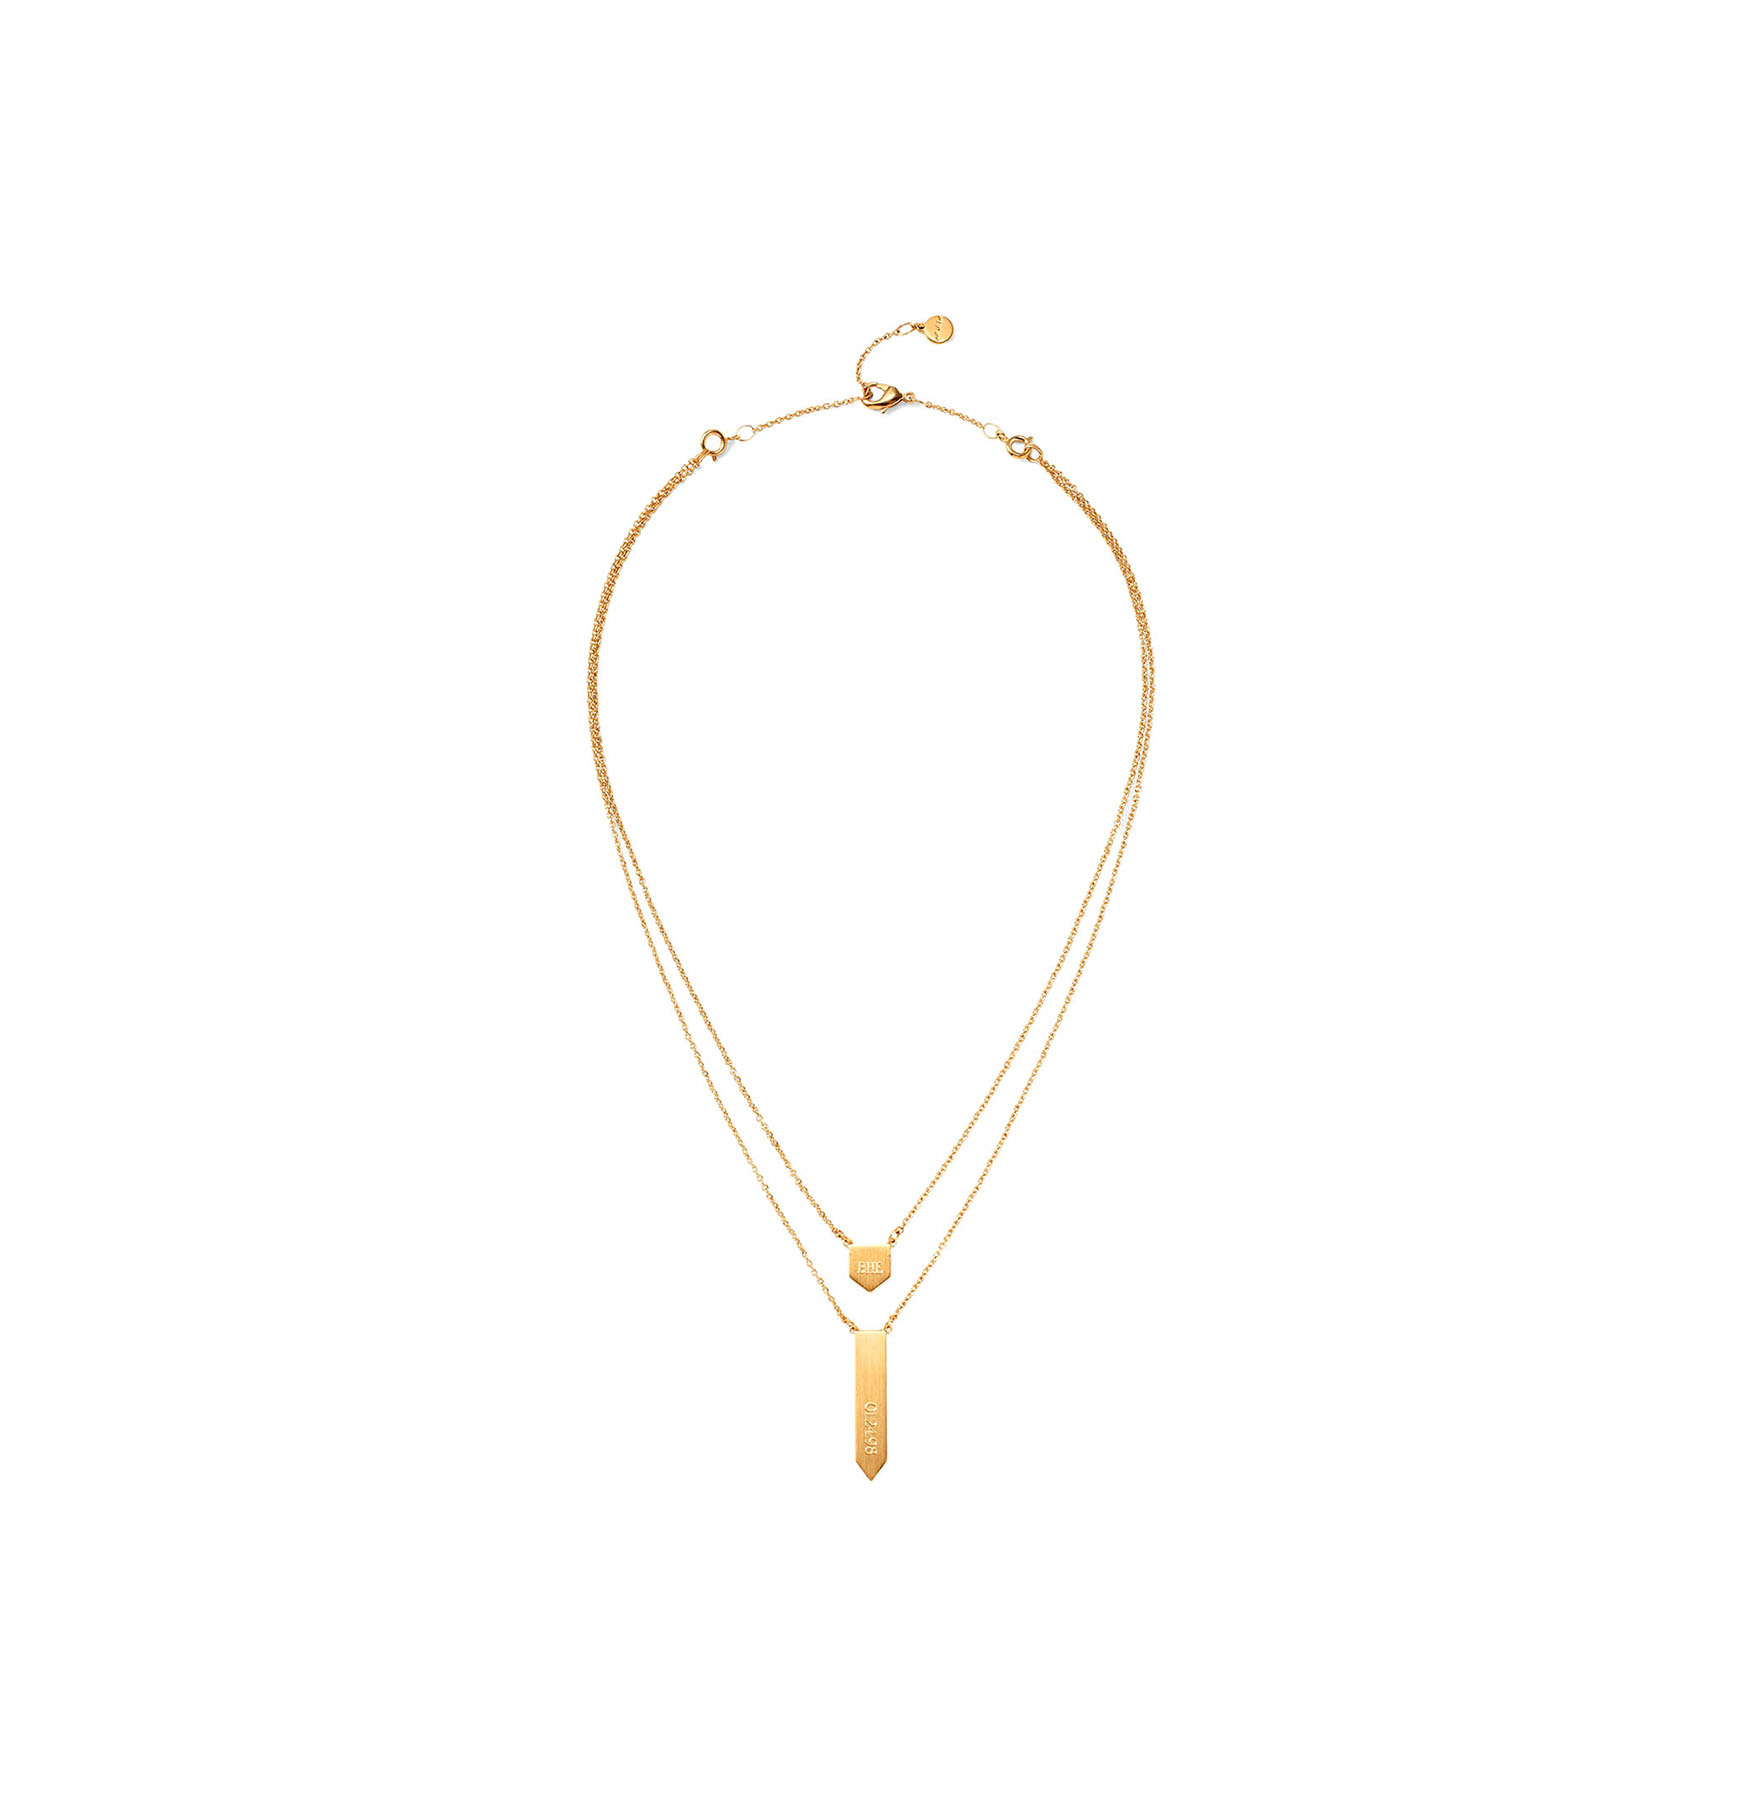 Signature Engravable Pre-Layered Necklace